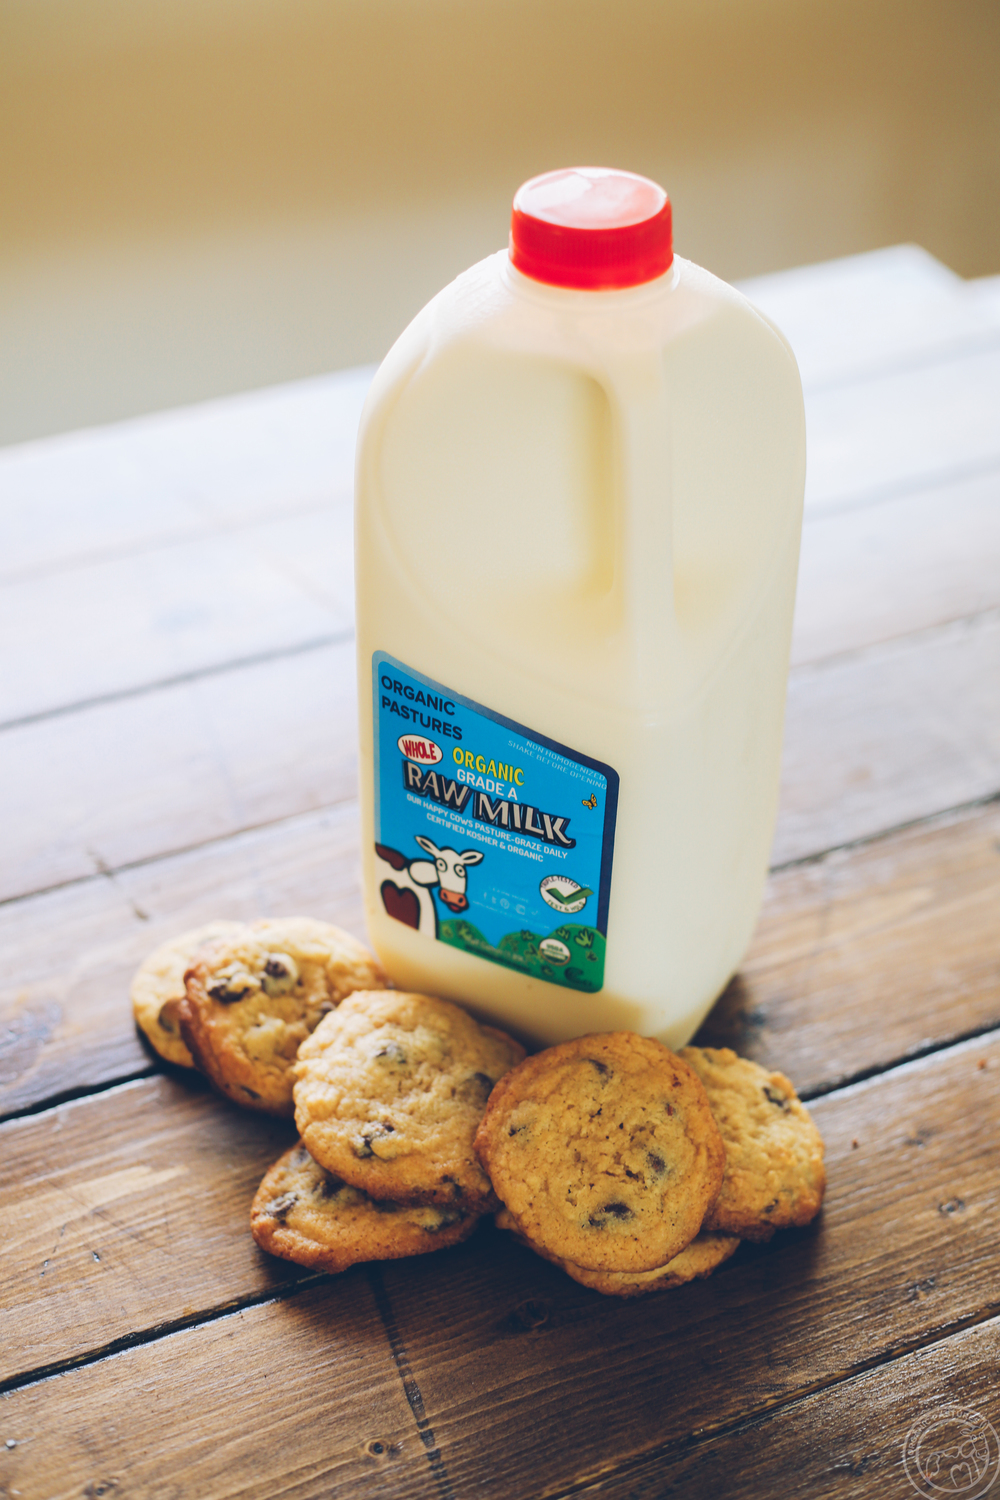 And of course, you can't have cookies without some delicious, nutritious milk.